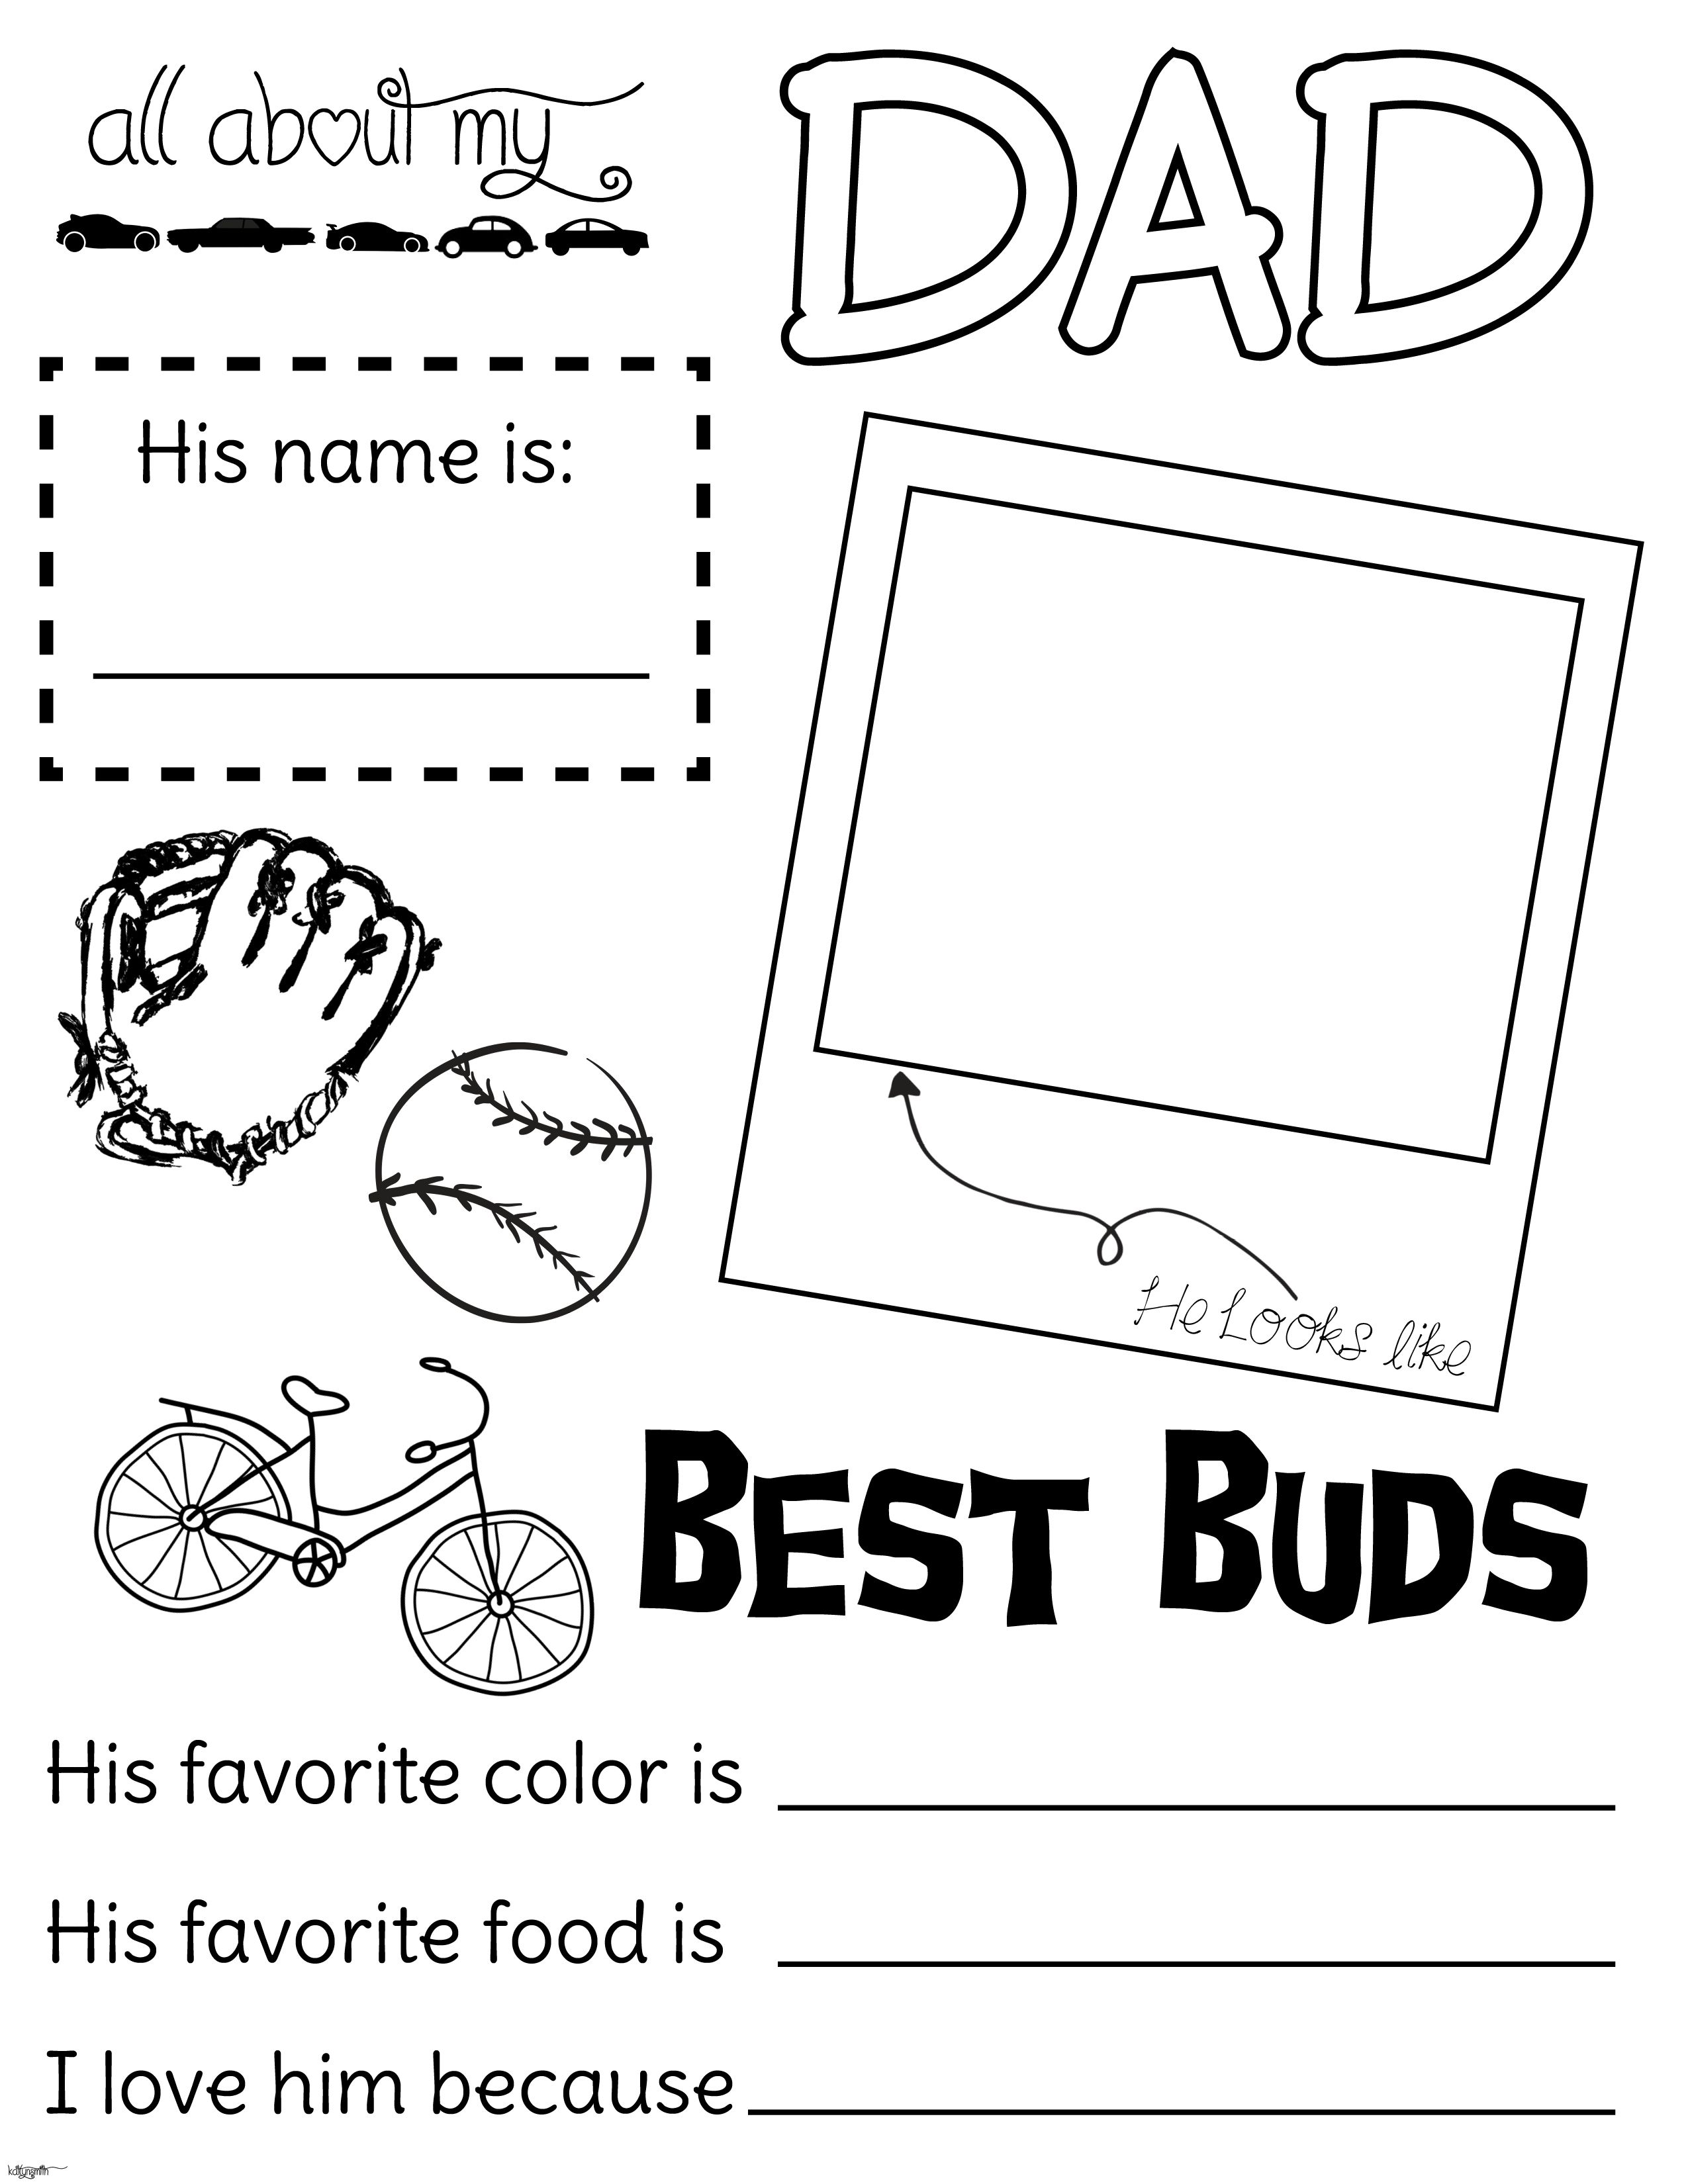 All About My Dad Fathers Day Handout Fillout Coloring